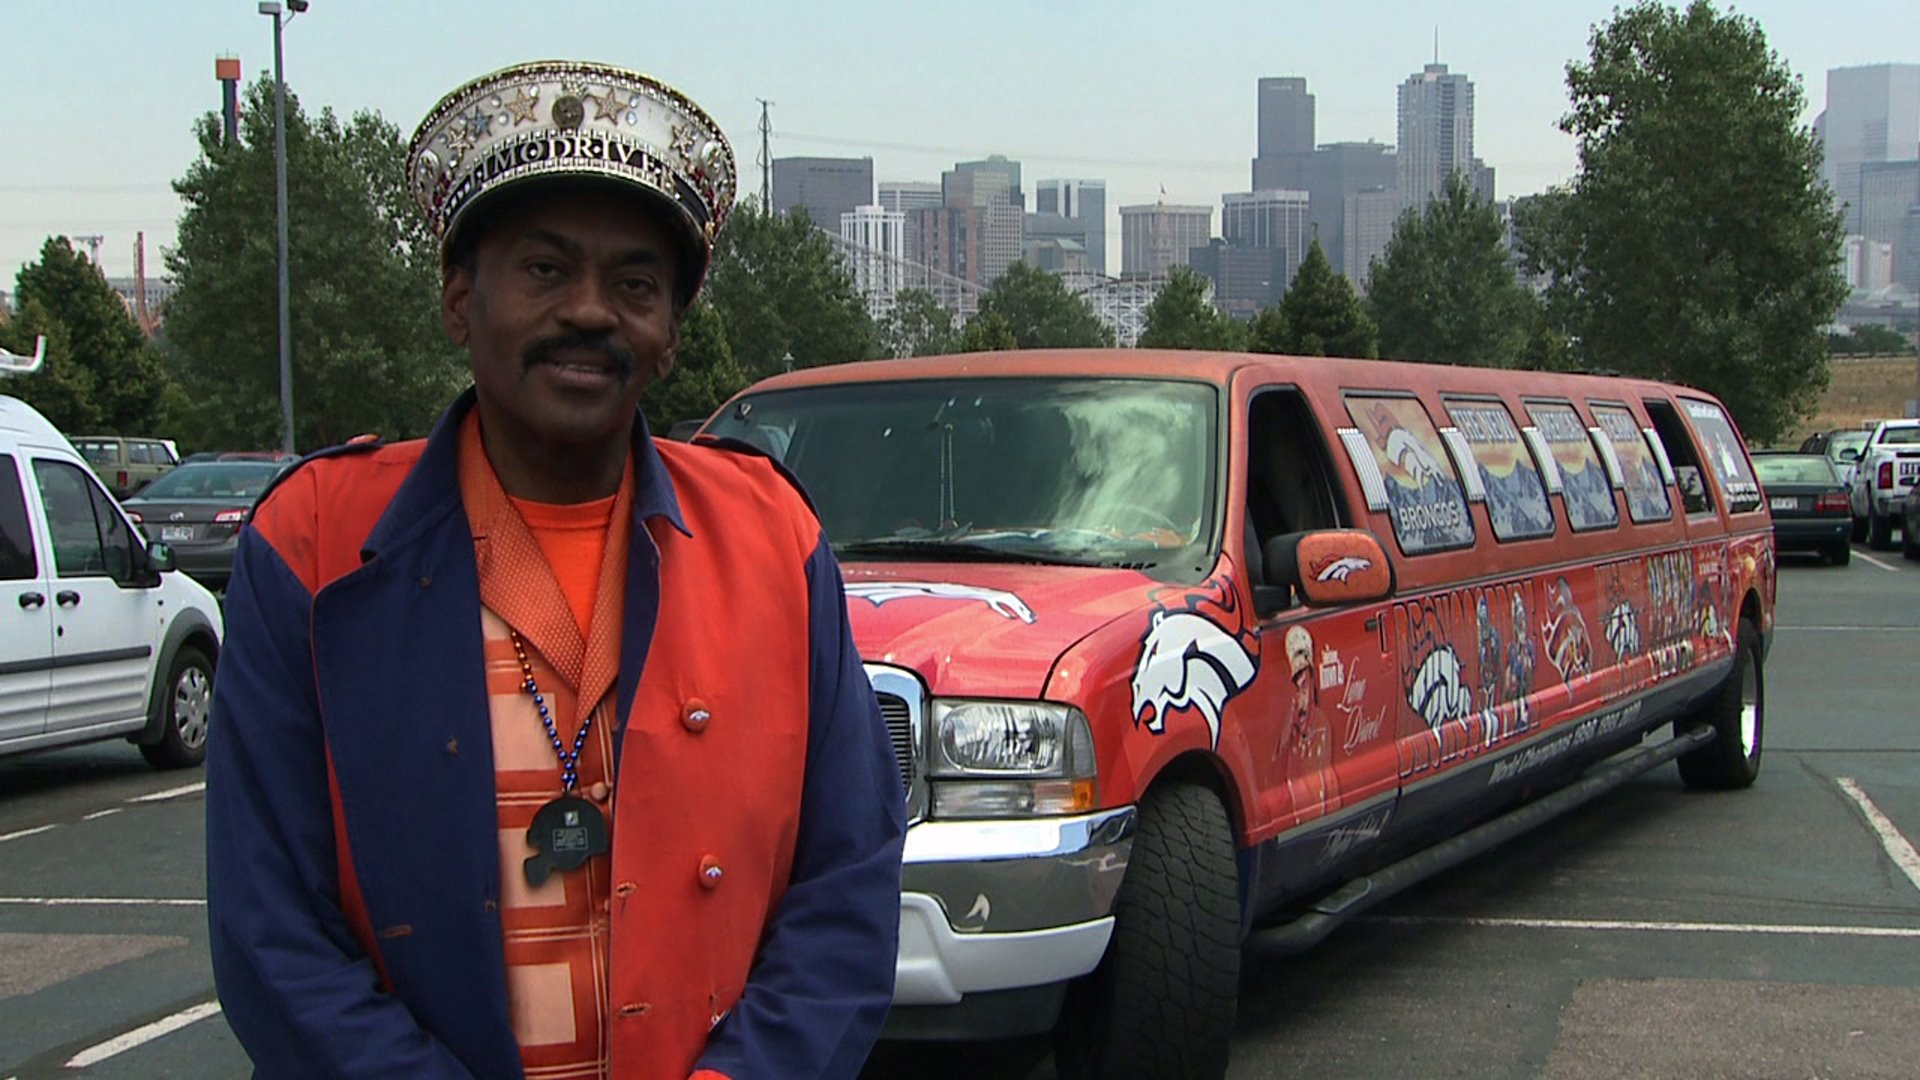 Super fan 'Limo Driver' saddened about Broncos owner Pat Bowlen's health